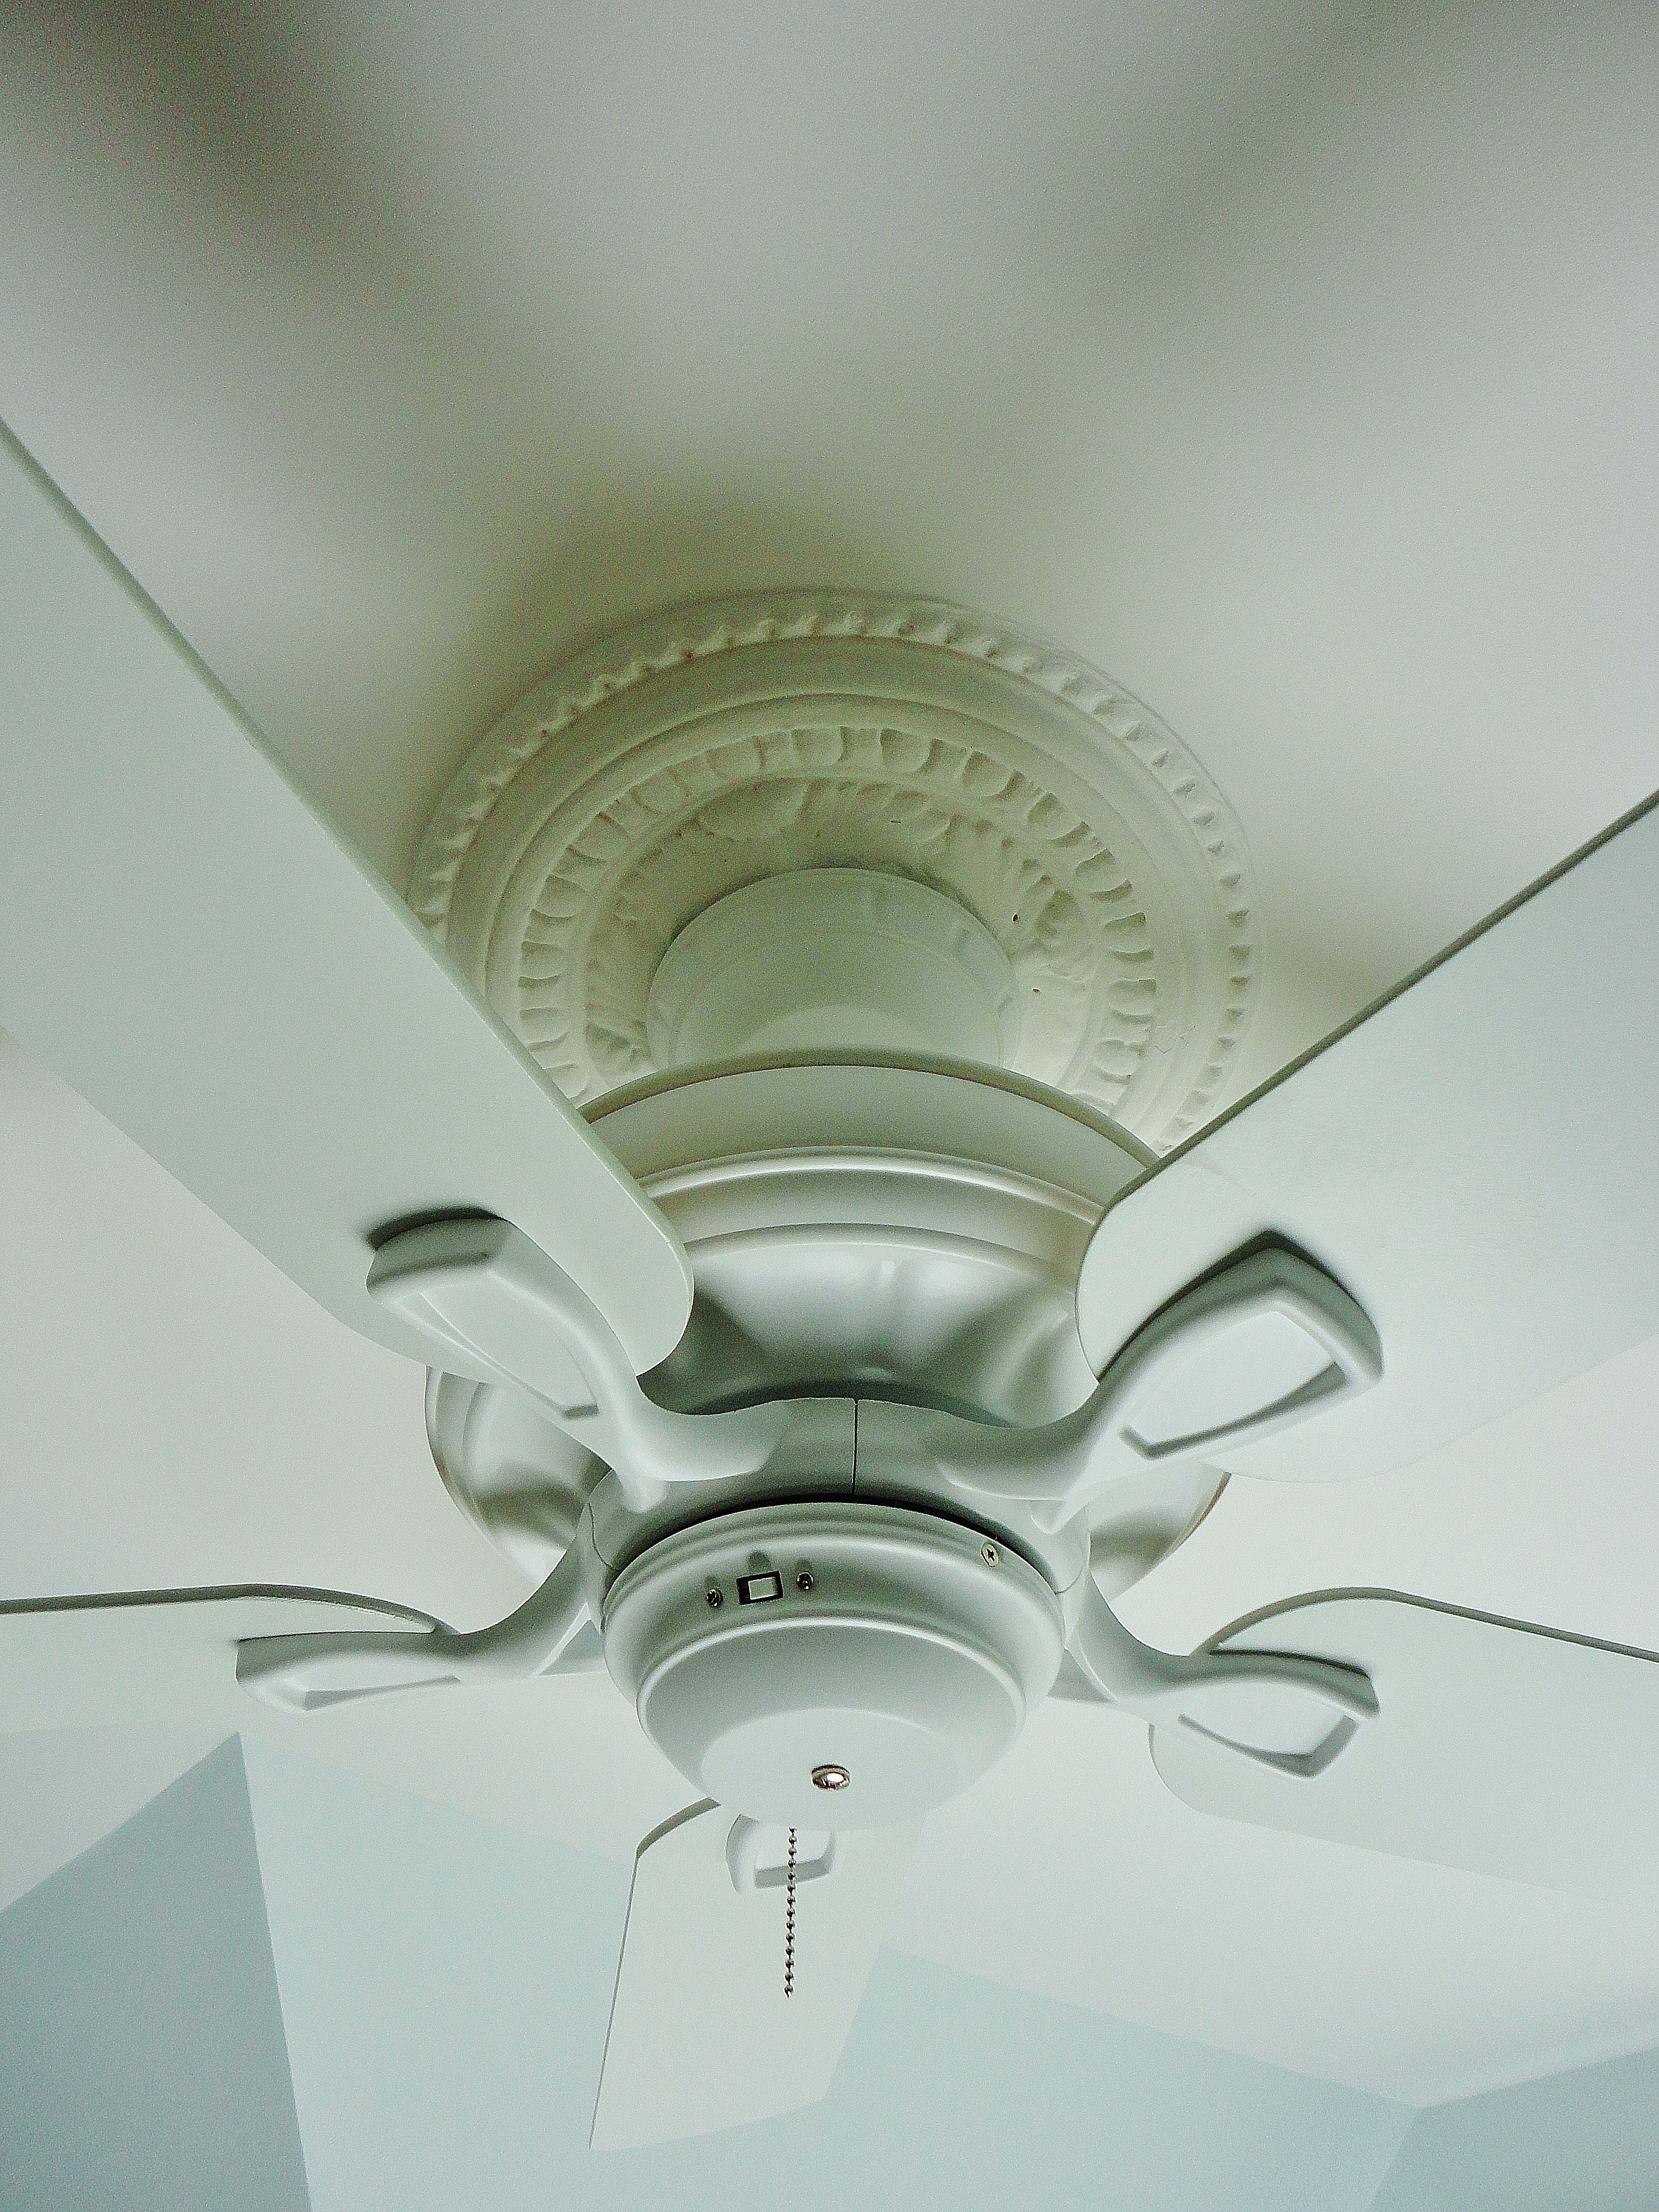 Electrician finally installed the ceiling fan The plaster ceiling